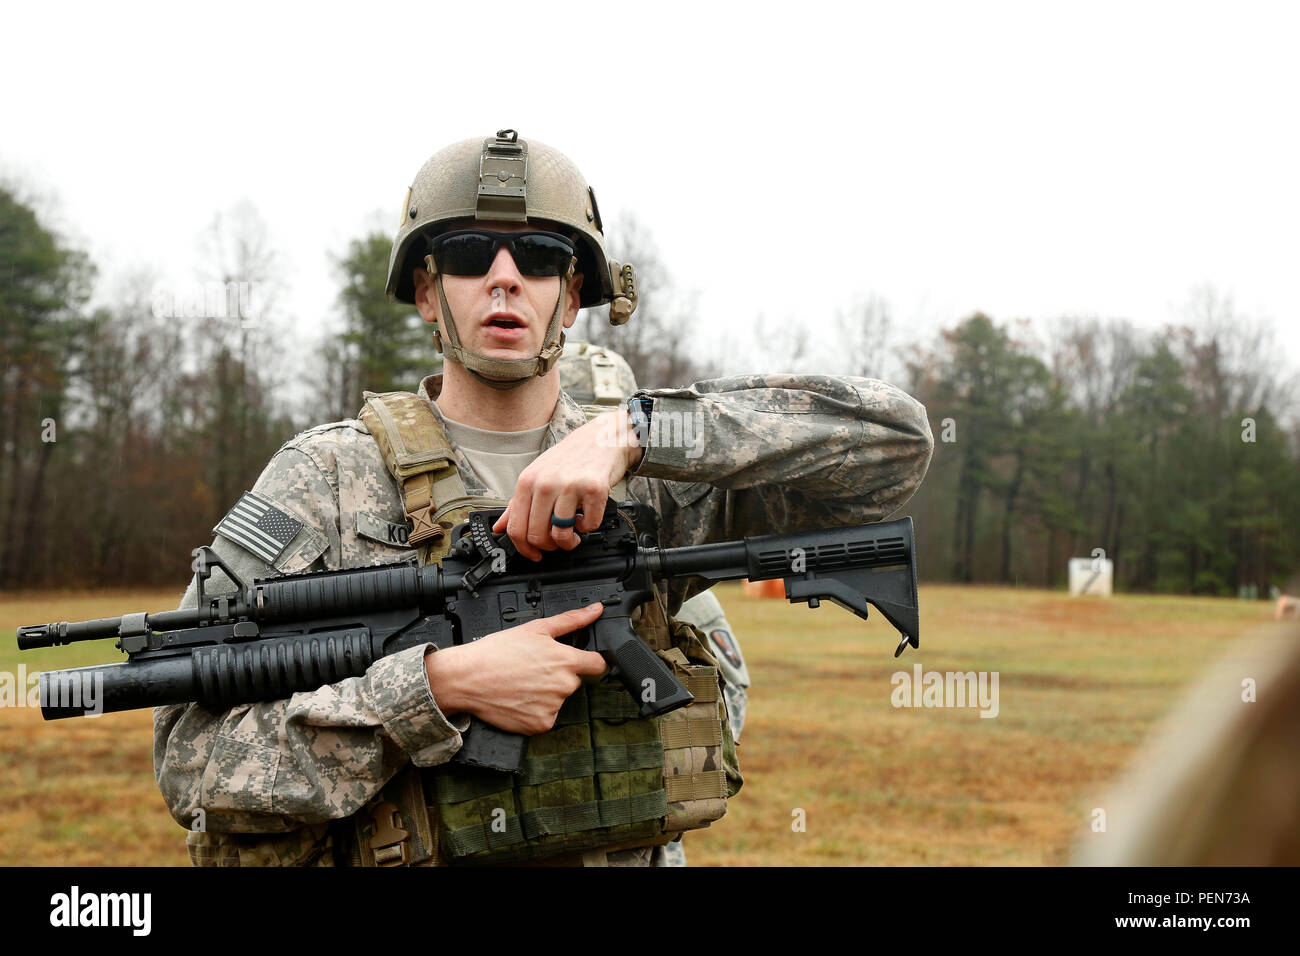 U.S. Army Staff Sgt. Brian Kohl, assigned to 55th Signal Company (Combat Camera), demonstrates the function of a quadrant sight on a M203 grenade launcher during heavy weapons training at Fort A.P. Hill, Va., Dec. 1, 2015. The 55th Signal Company conducted heavy weapons training to familiarize with the basic operations and functions of the heavy weapon system. (U.S. Army photo by Spc. Darnell Torres/Released). - Stock Image